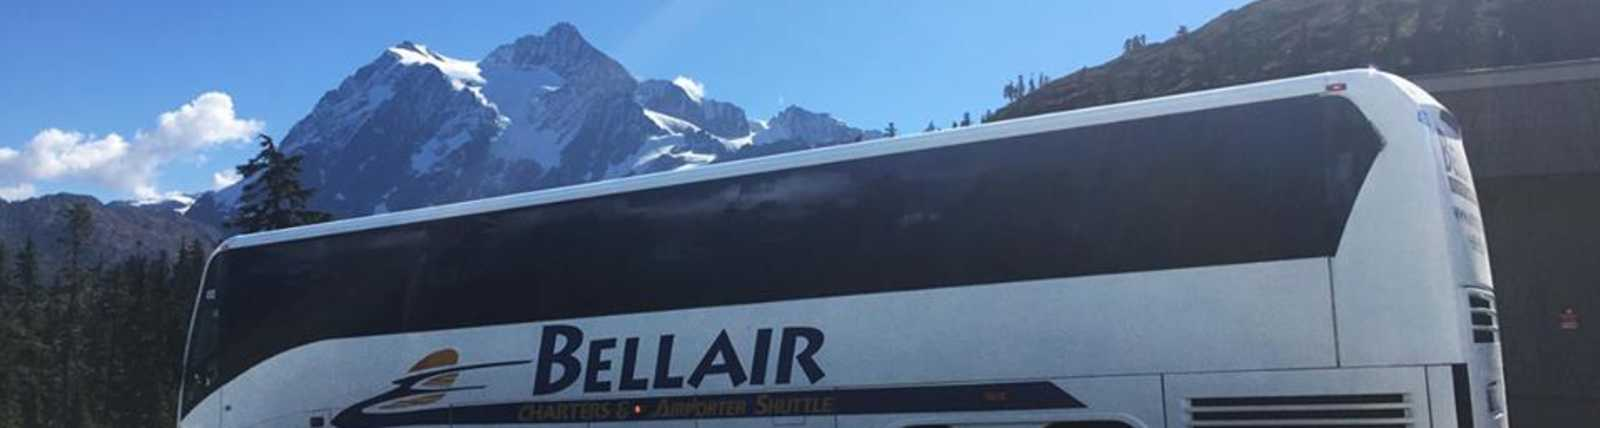 Bellair Charters/Airporter Shuttle